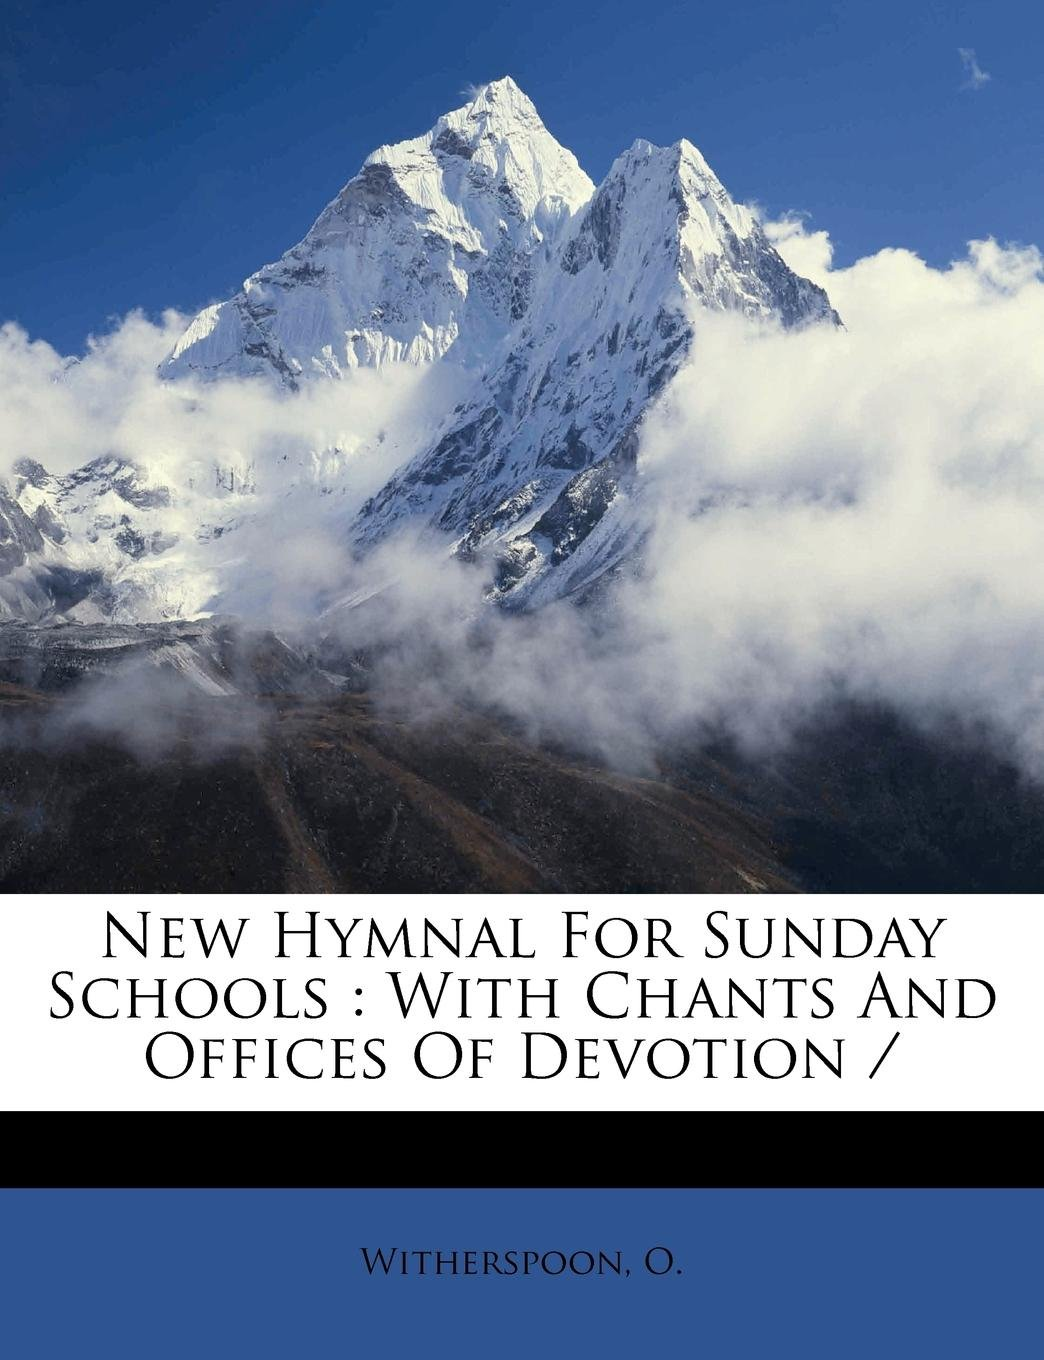 New Hymnal For Sunday Schools: With Chants And Offices Of Devotion / pdf